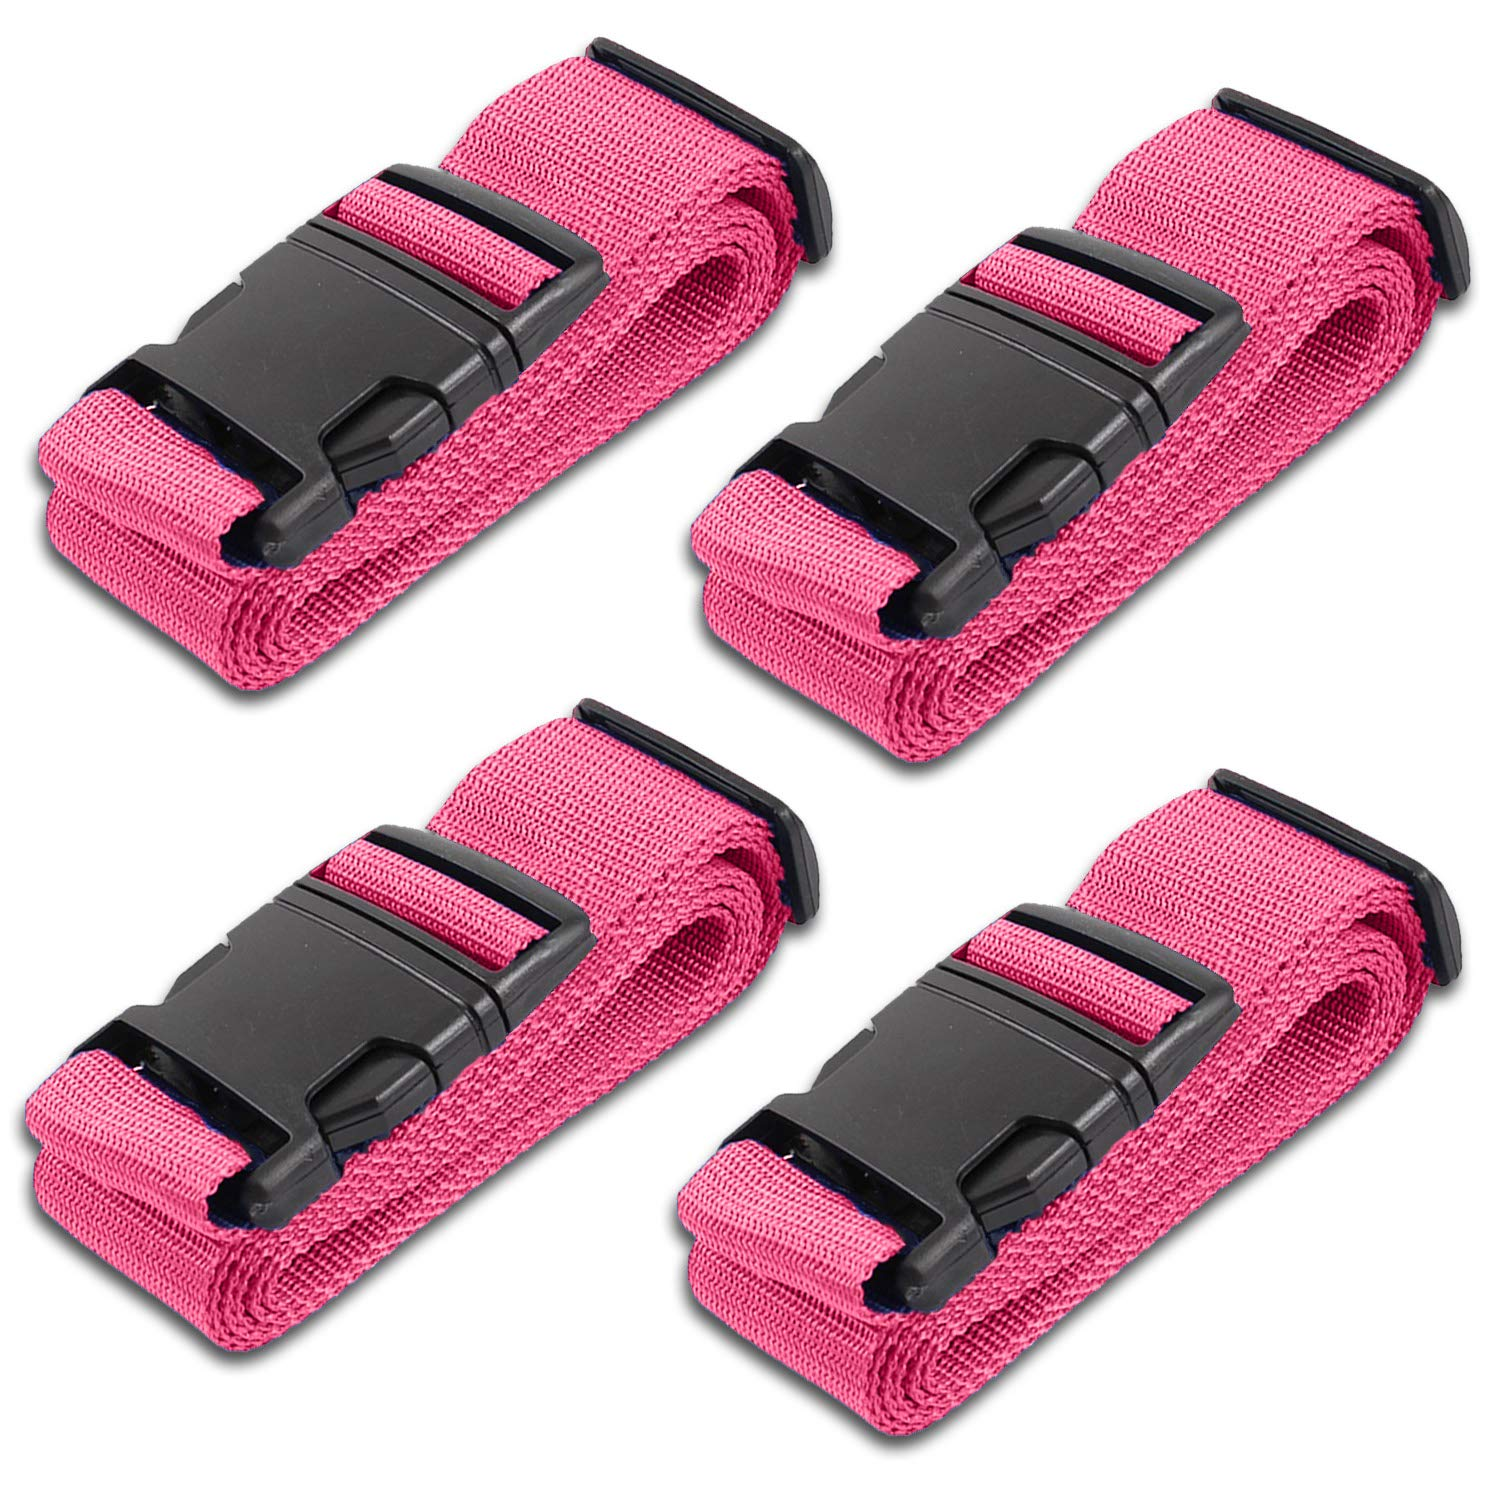 HeroFiber Pink Luggage Belts Suitcase Straps Adjustable and Durable, Travel Case Accessories, 4 Pack